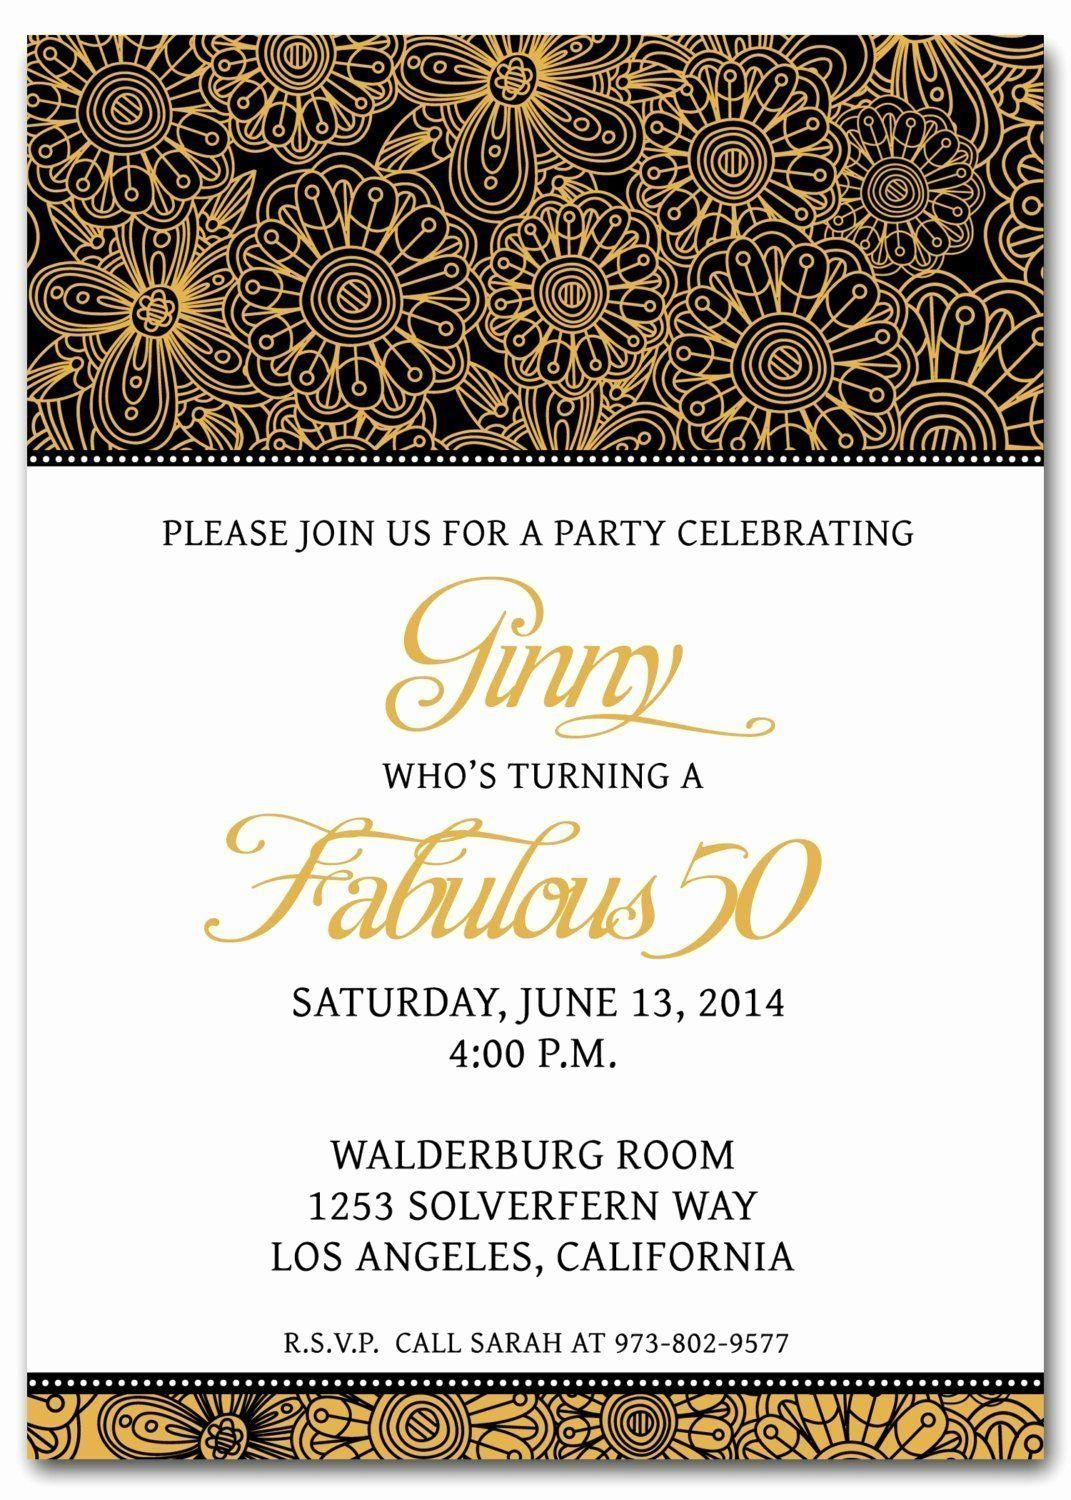 50th Birthday Invitation Card Luxury 50th Birthday Invitation Surprise Birthday Party Invitations Birthday Invitation Templates 50th Birthday Party Invitations